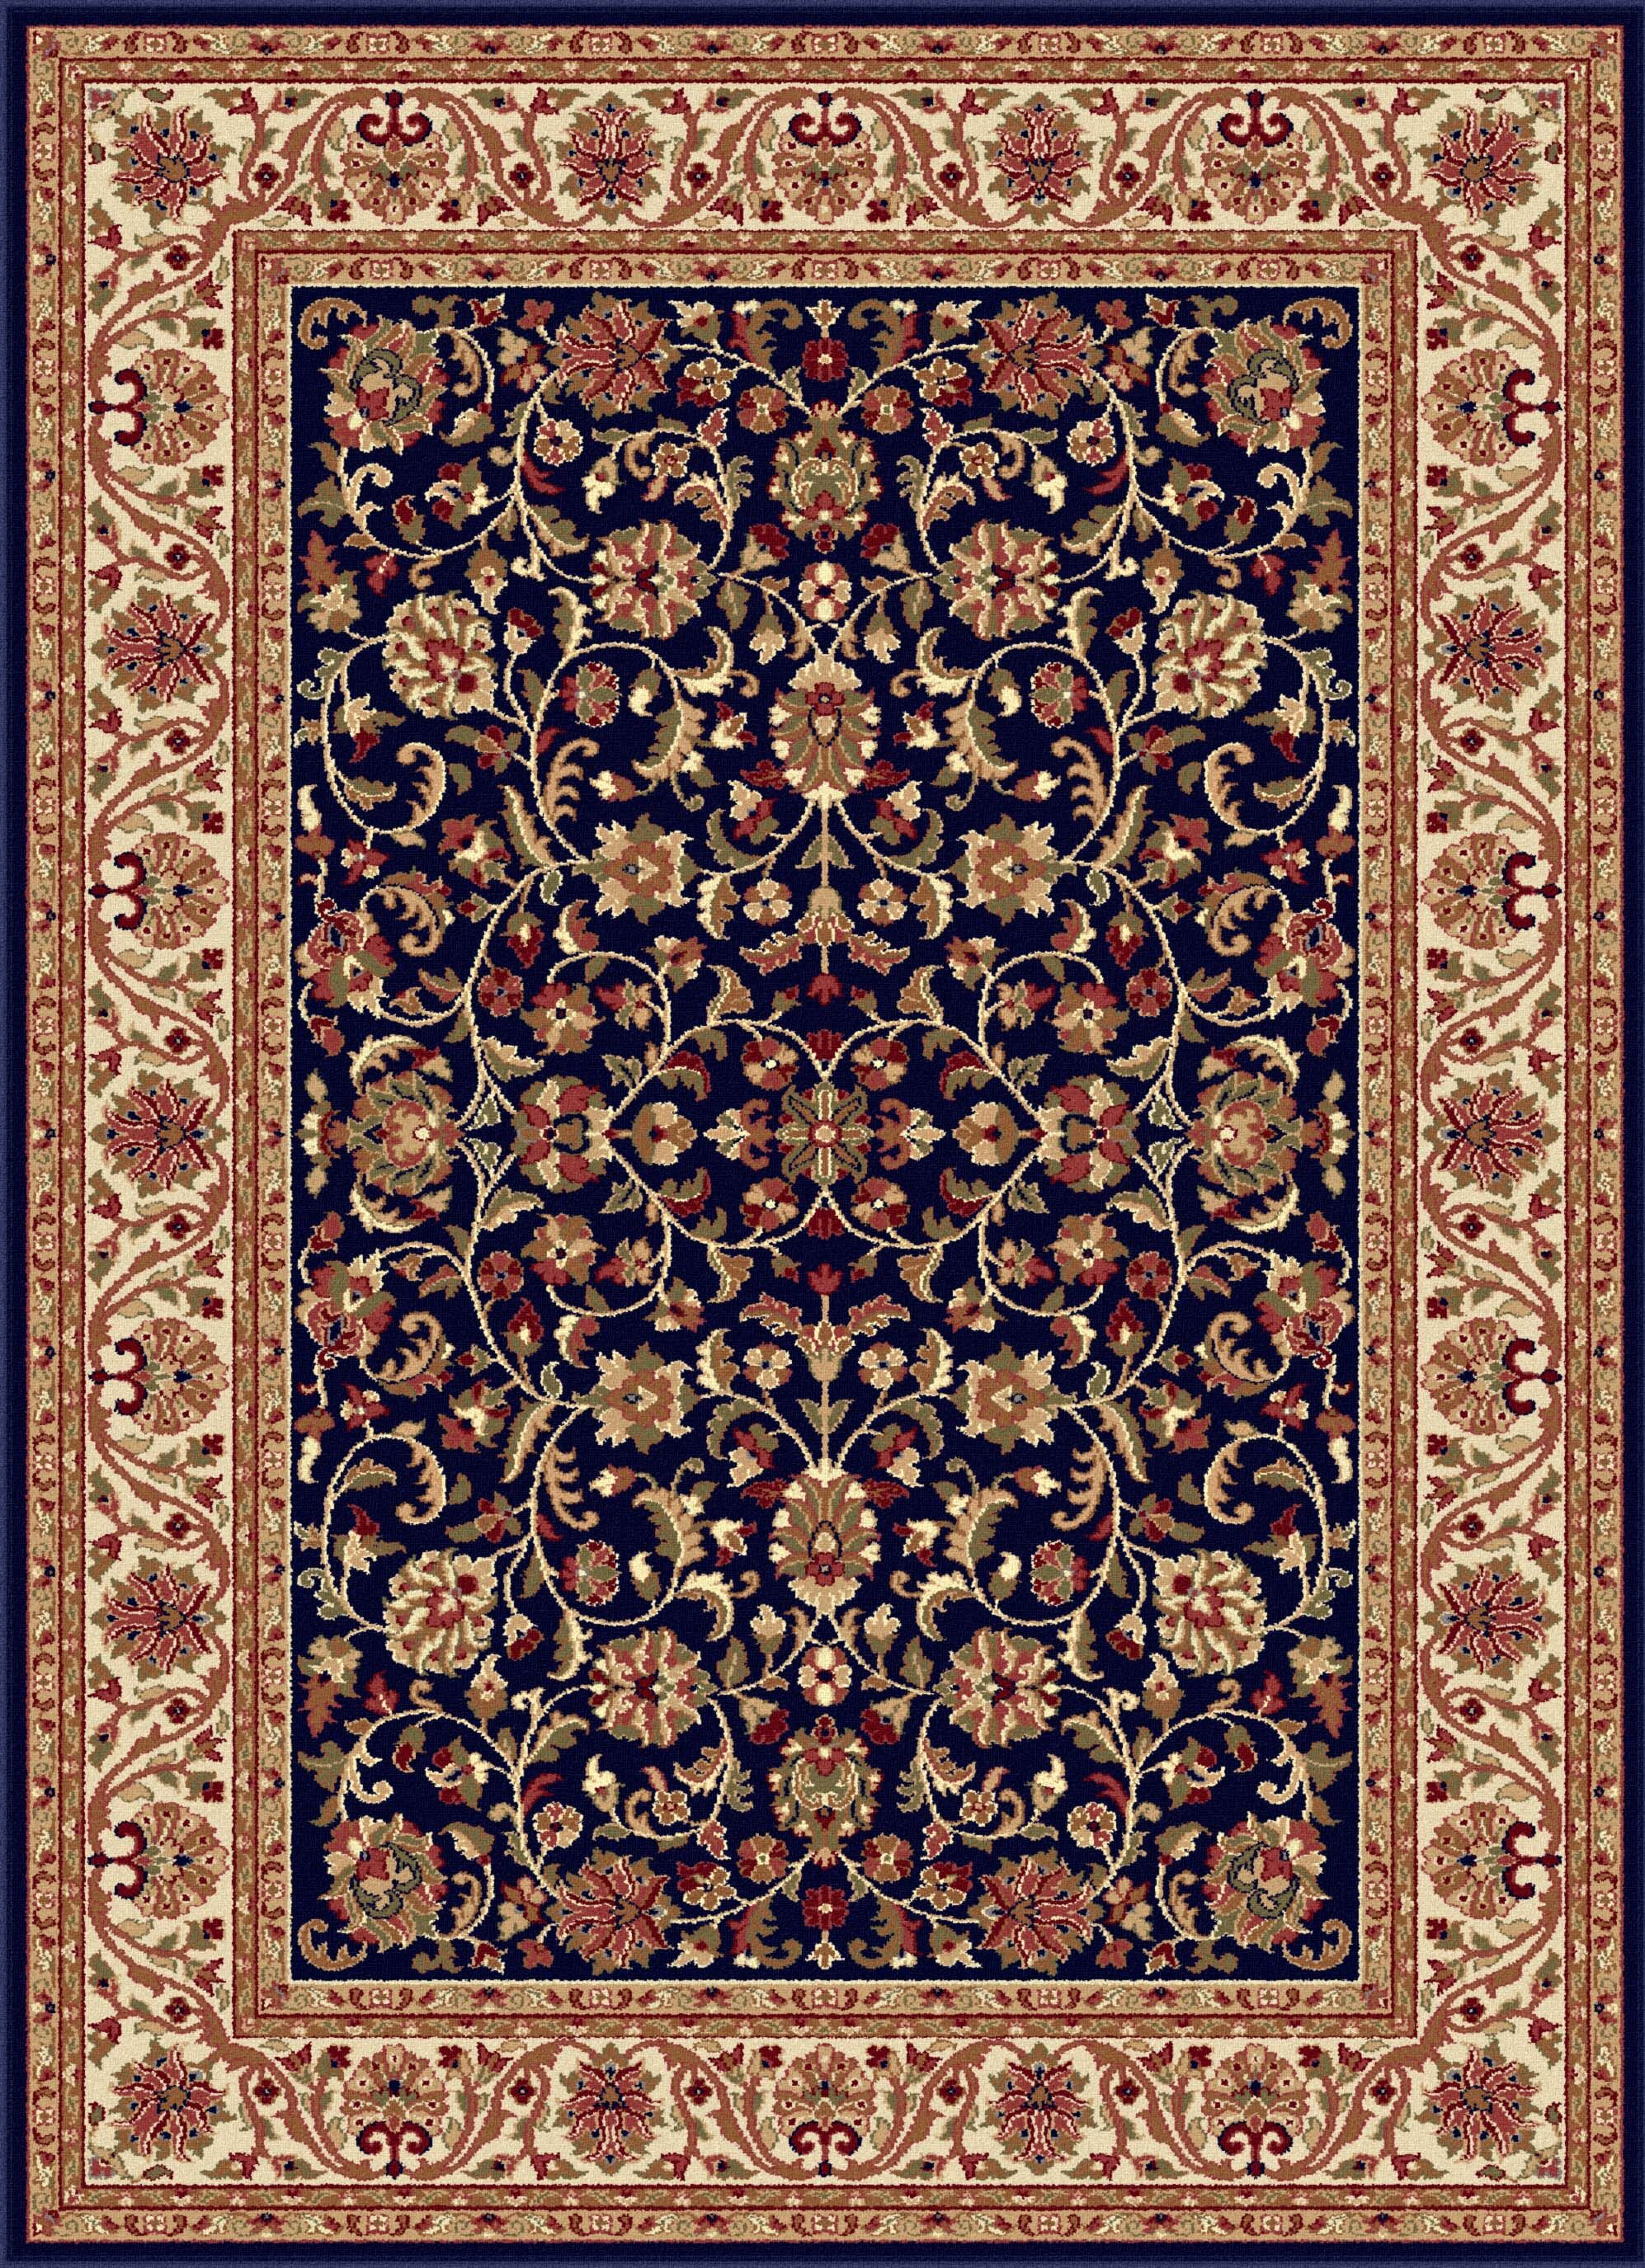 Clarence Navy/Beige Area Rug Rug Size: 10'6'' x 14'6''